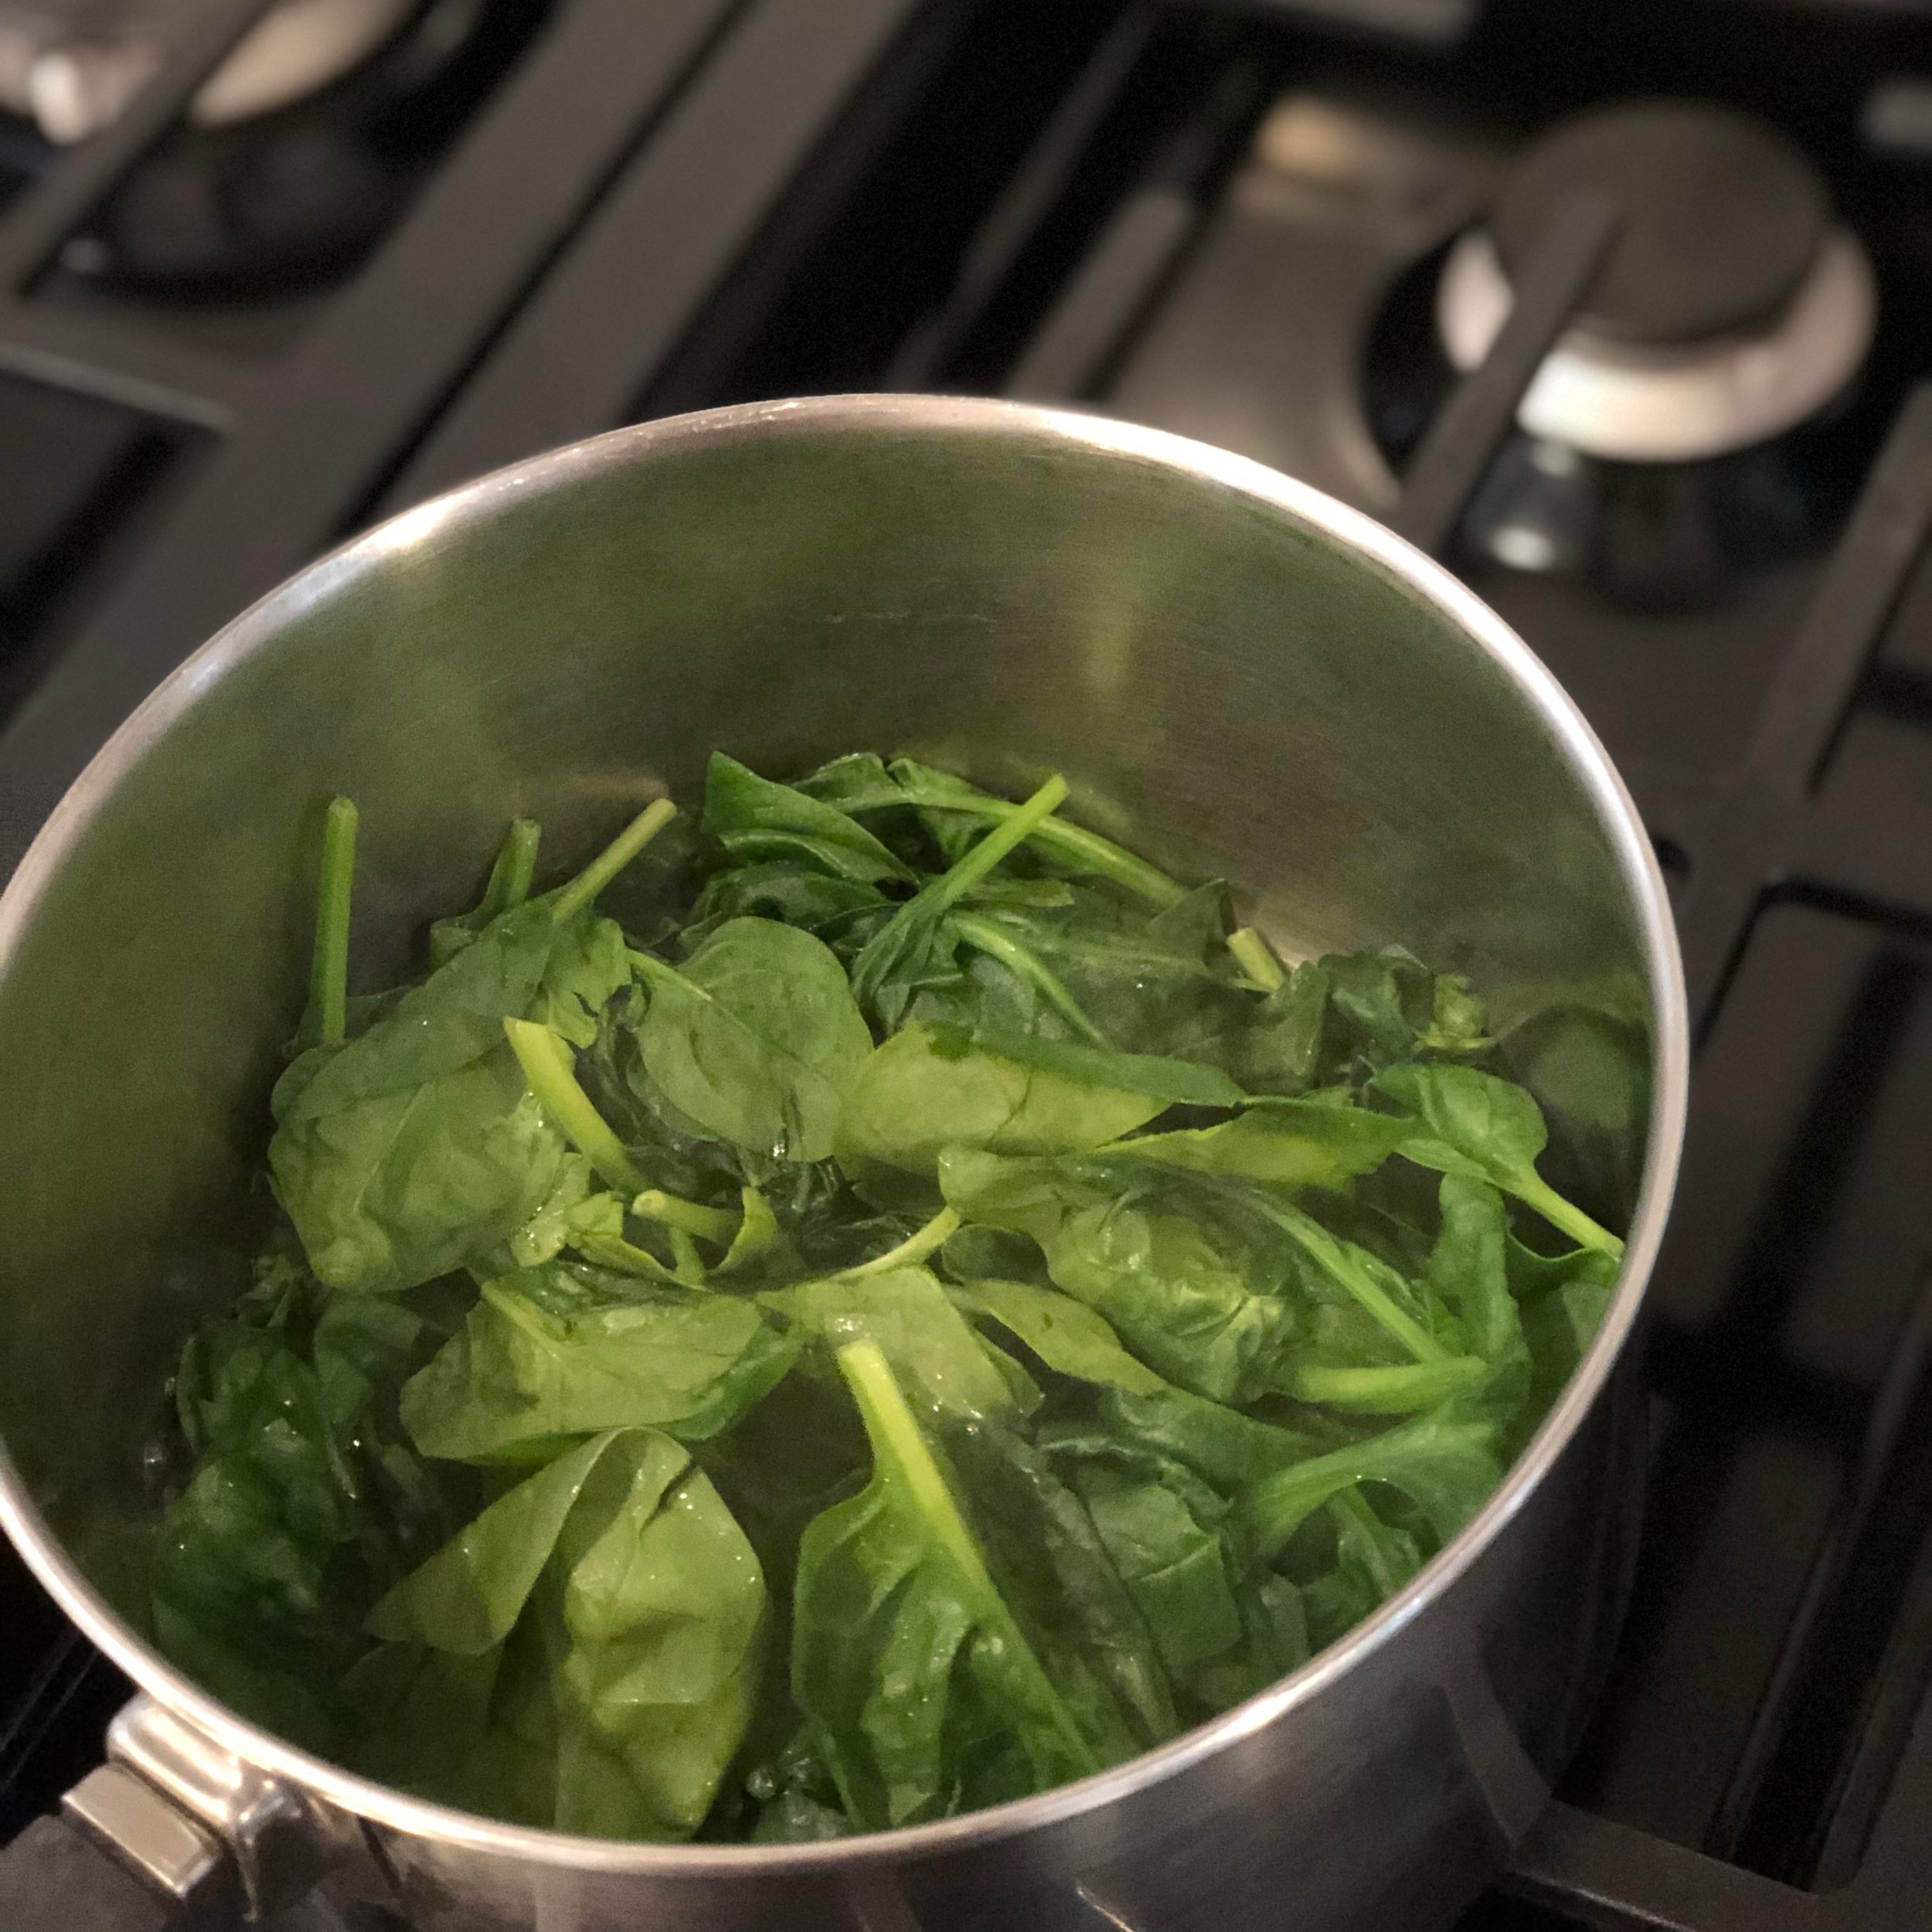 - Step 1:First, cook the spinach until it is slightly wilted. Drain, cool, and chop. Then set aside.